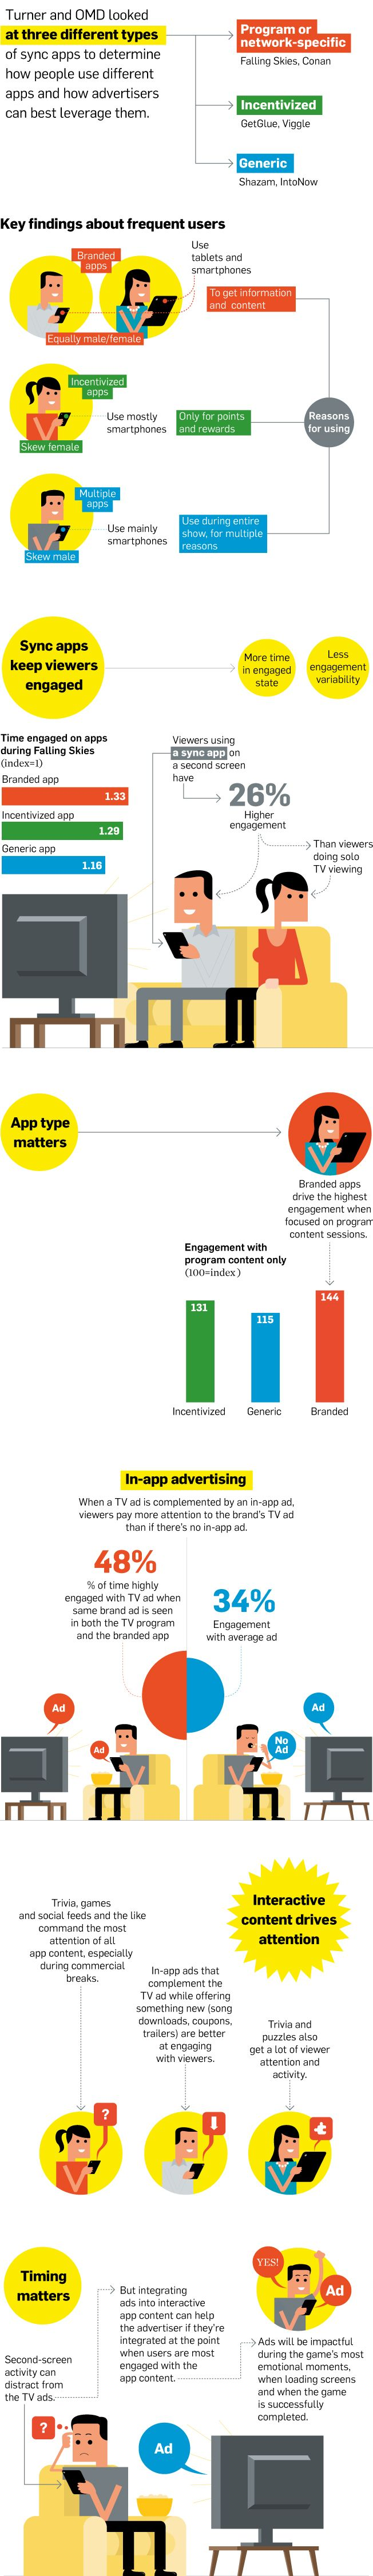 The Type of #SecondScreen Apps That Keep Users Engaged the Most | How advertisers can best leverage them by Time Warner Medialab via @Adweek